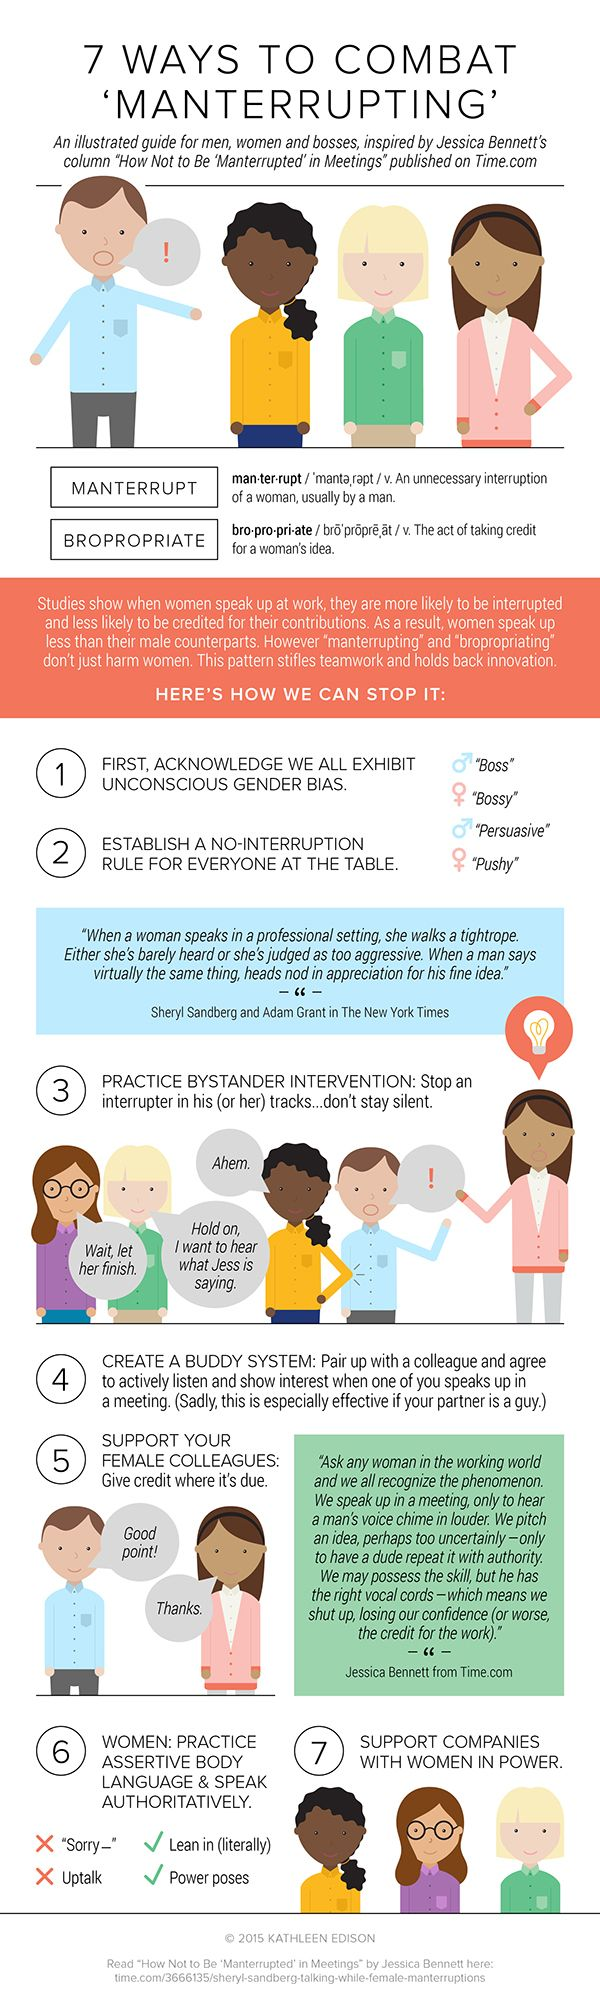 What Are 7 Ways To Stop Manterruption And Bropriation? #infographic